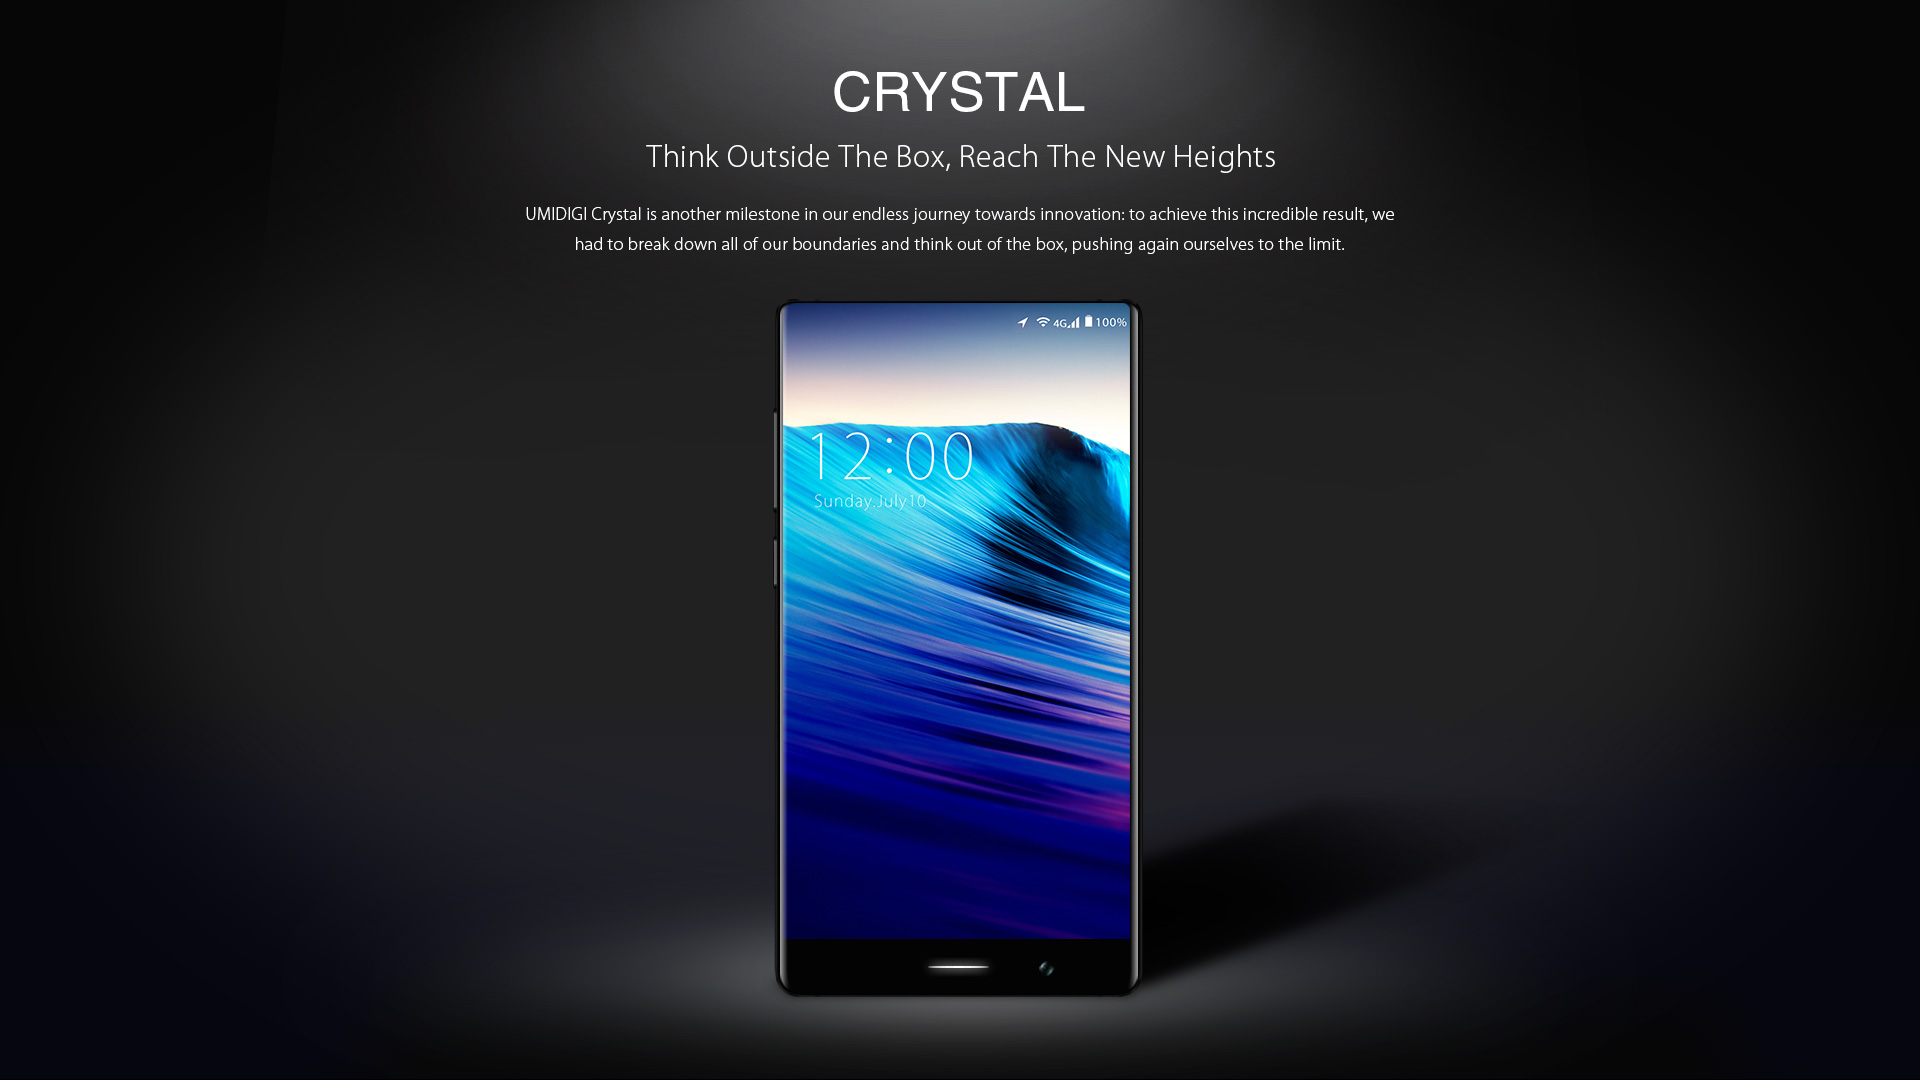 UMIDIGI Crystal 4G Phablet 5.5 inch FHD Screen Android 7.0 MTK6737T Quad Core 1.5GHz 2GB RAM 16GB ROM Fingerprint Scanner Dual Rear Cameras